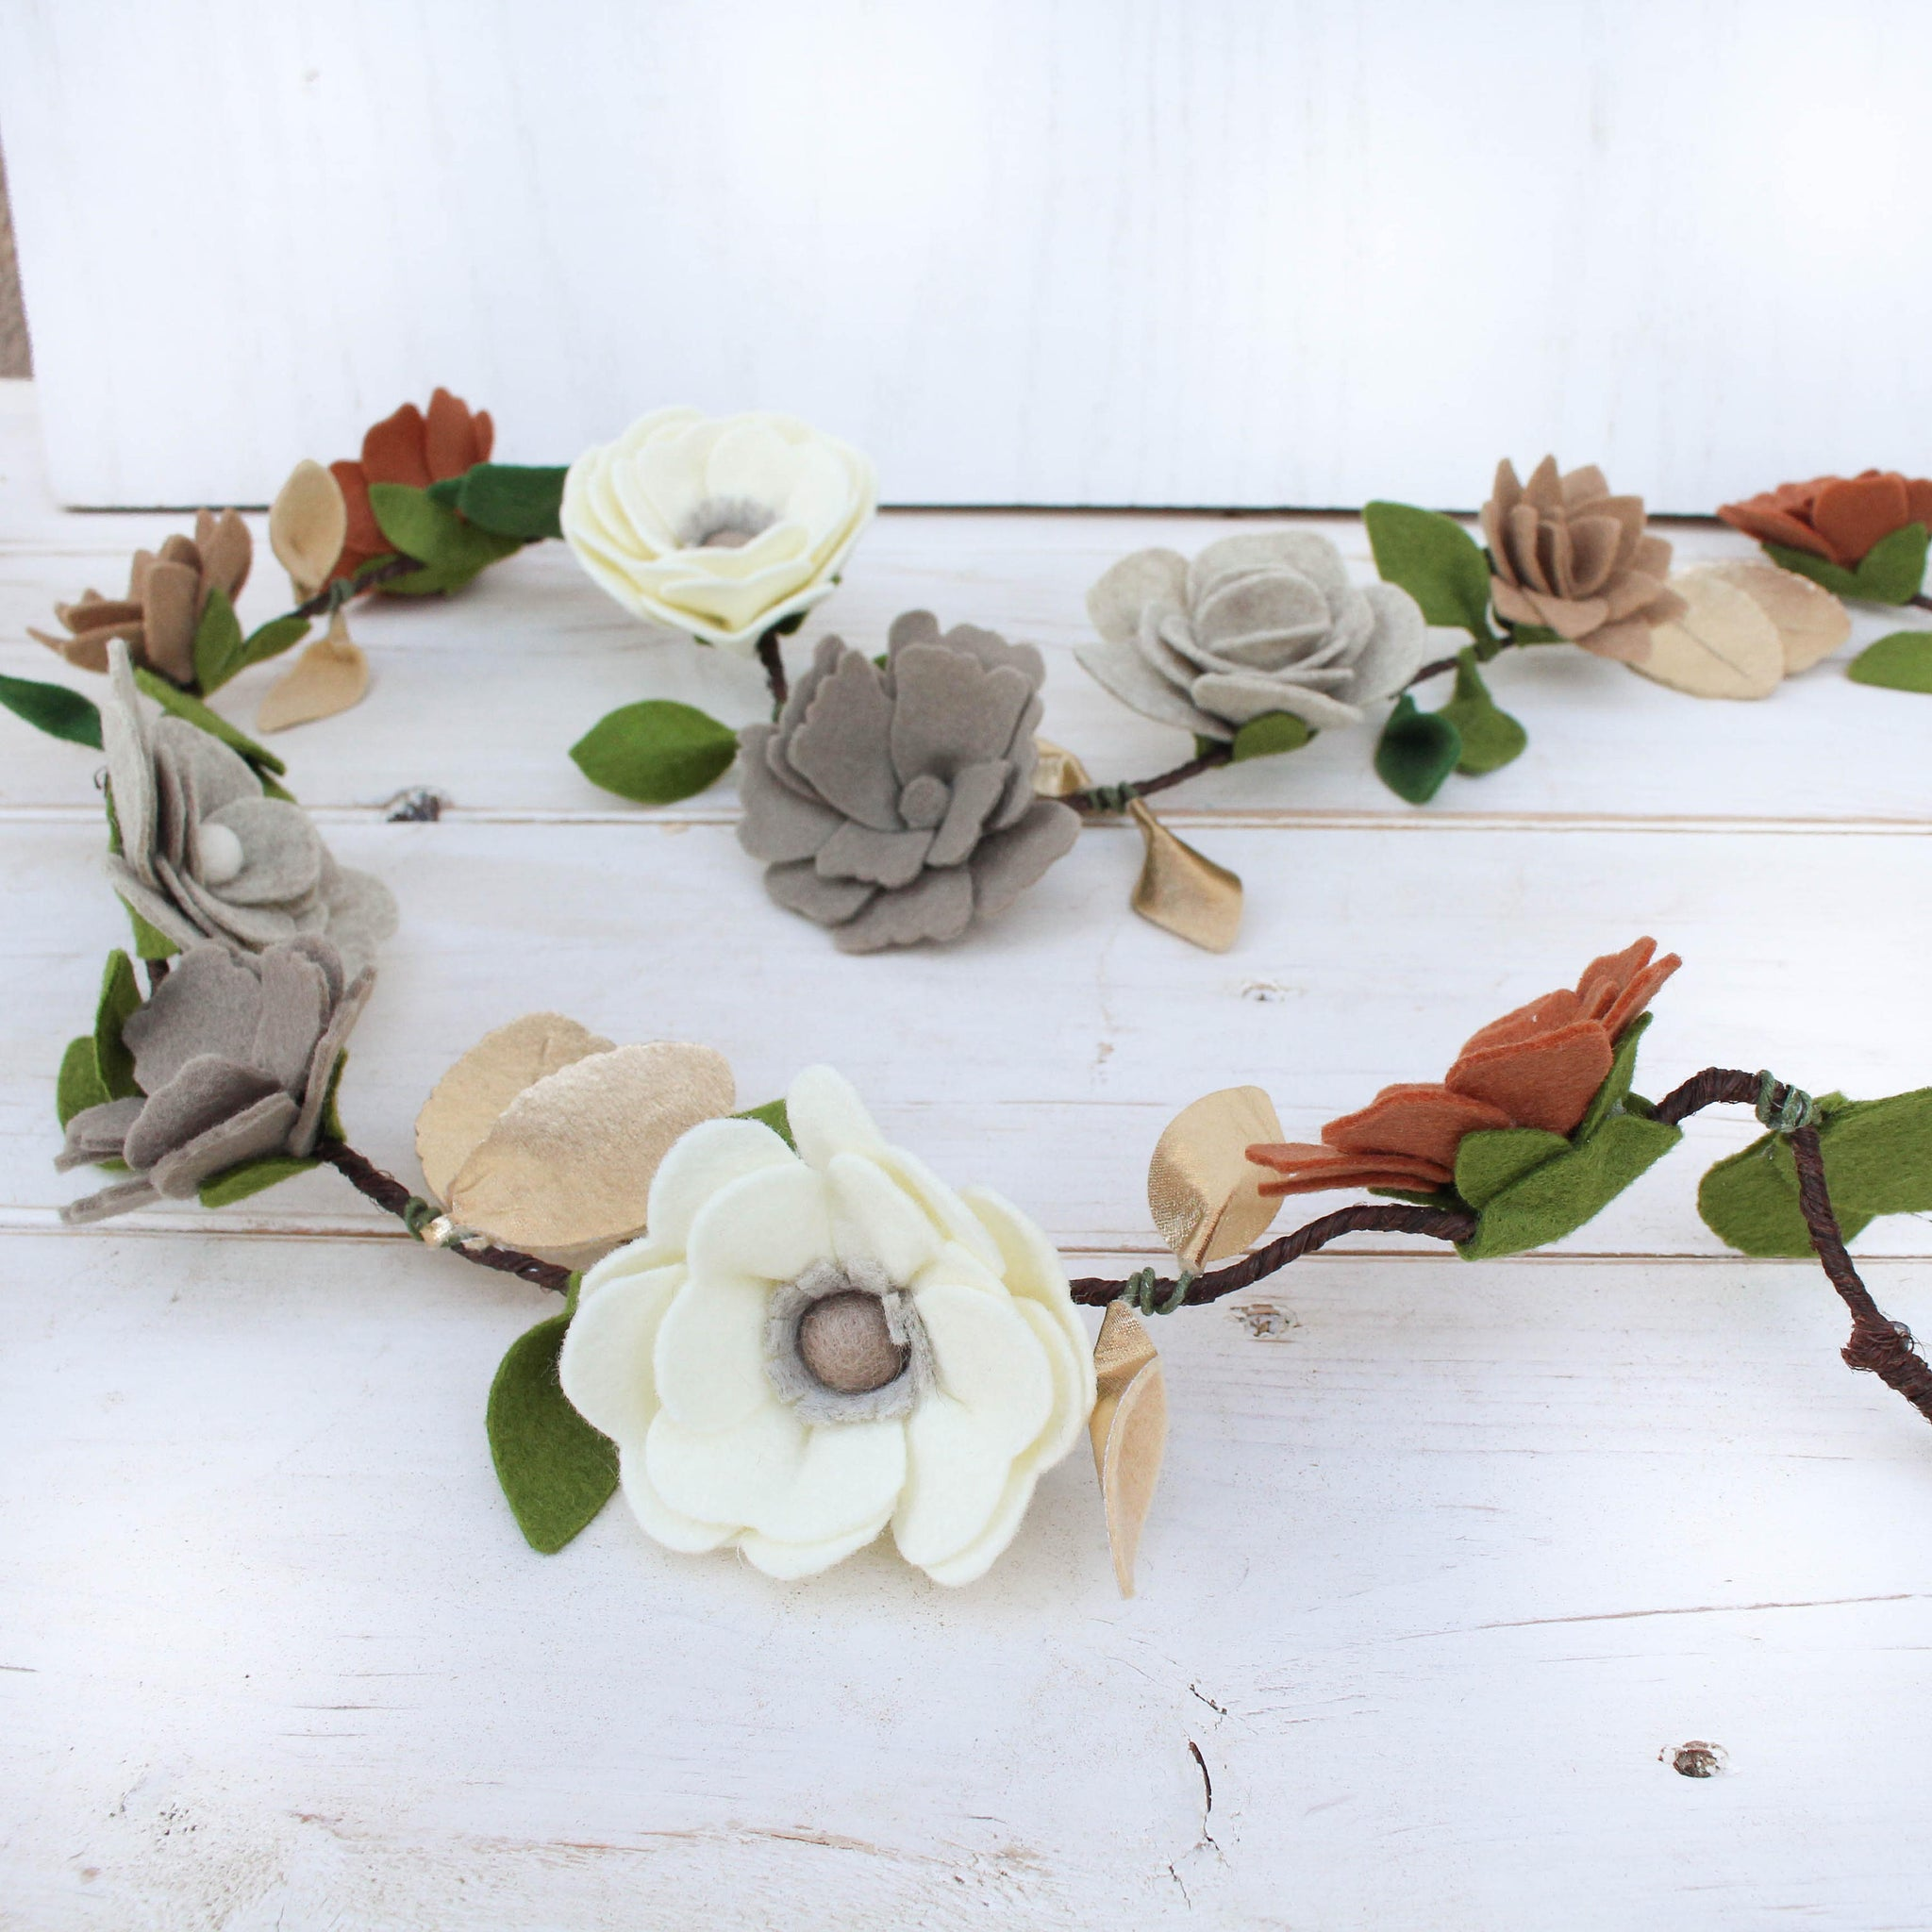 Felt Flower Garland, Vine, Neutral Colors, Felt Flowers, Flower Garland, Newborn Photo Prop, Felt Garland, nursery garland, floral garland